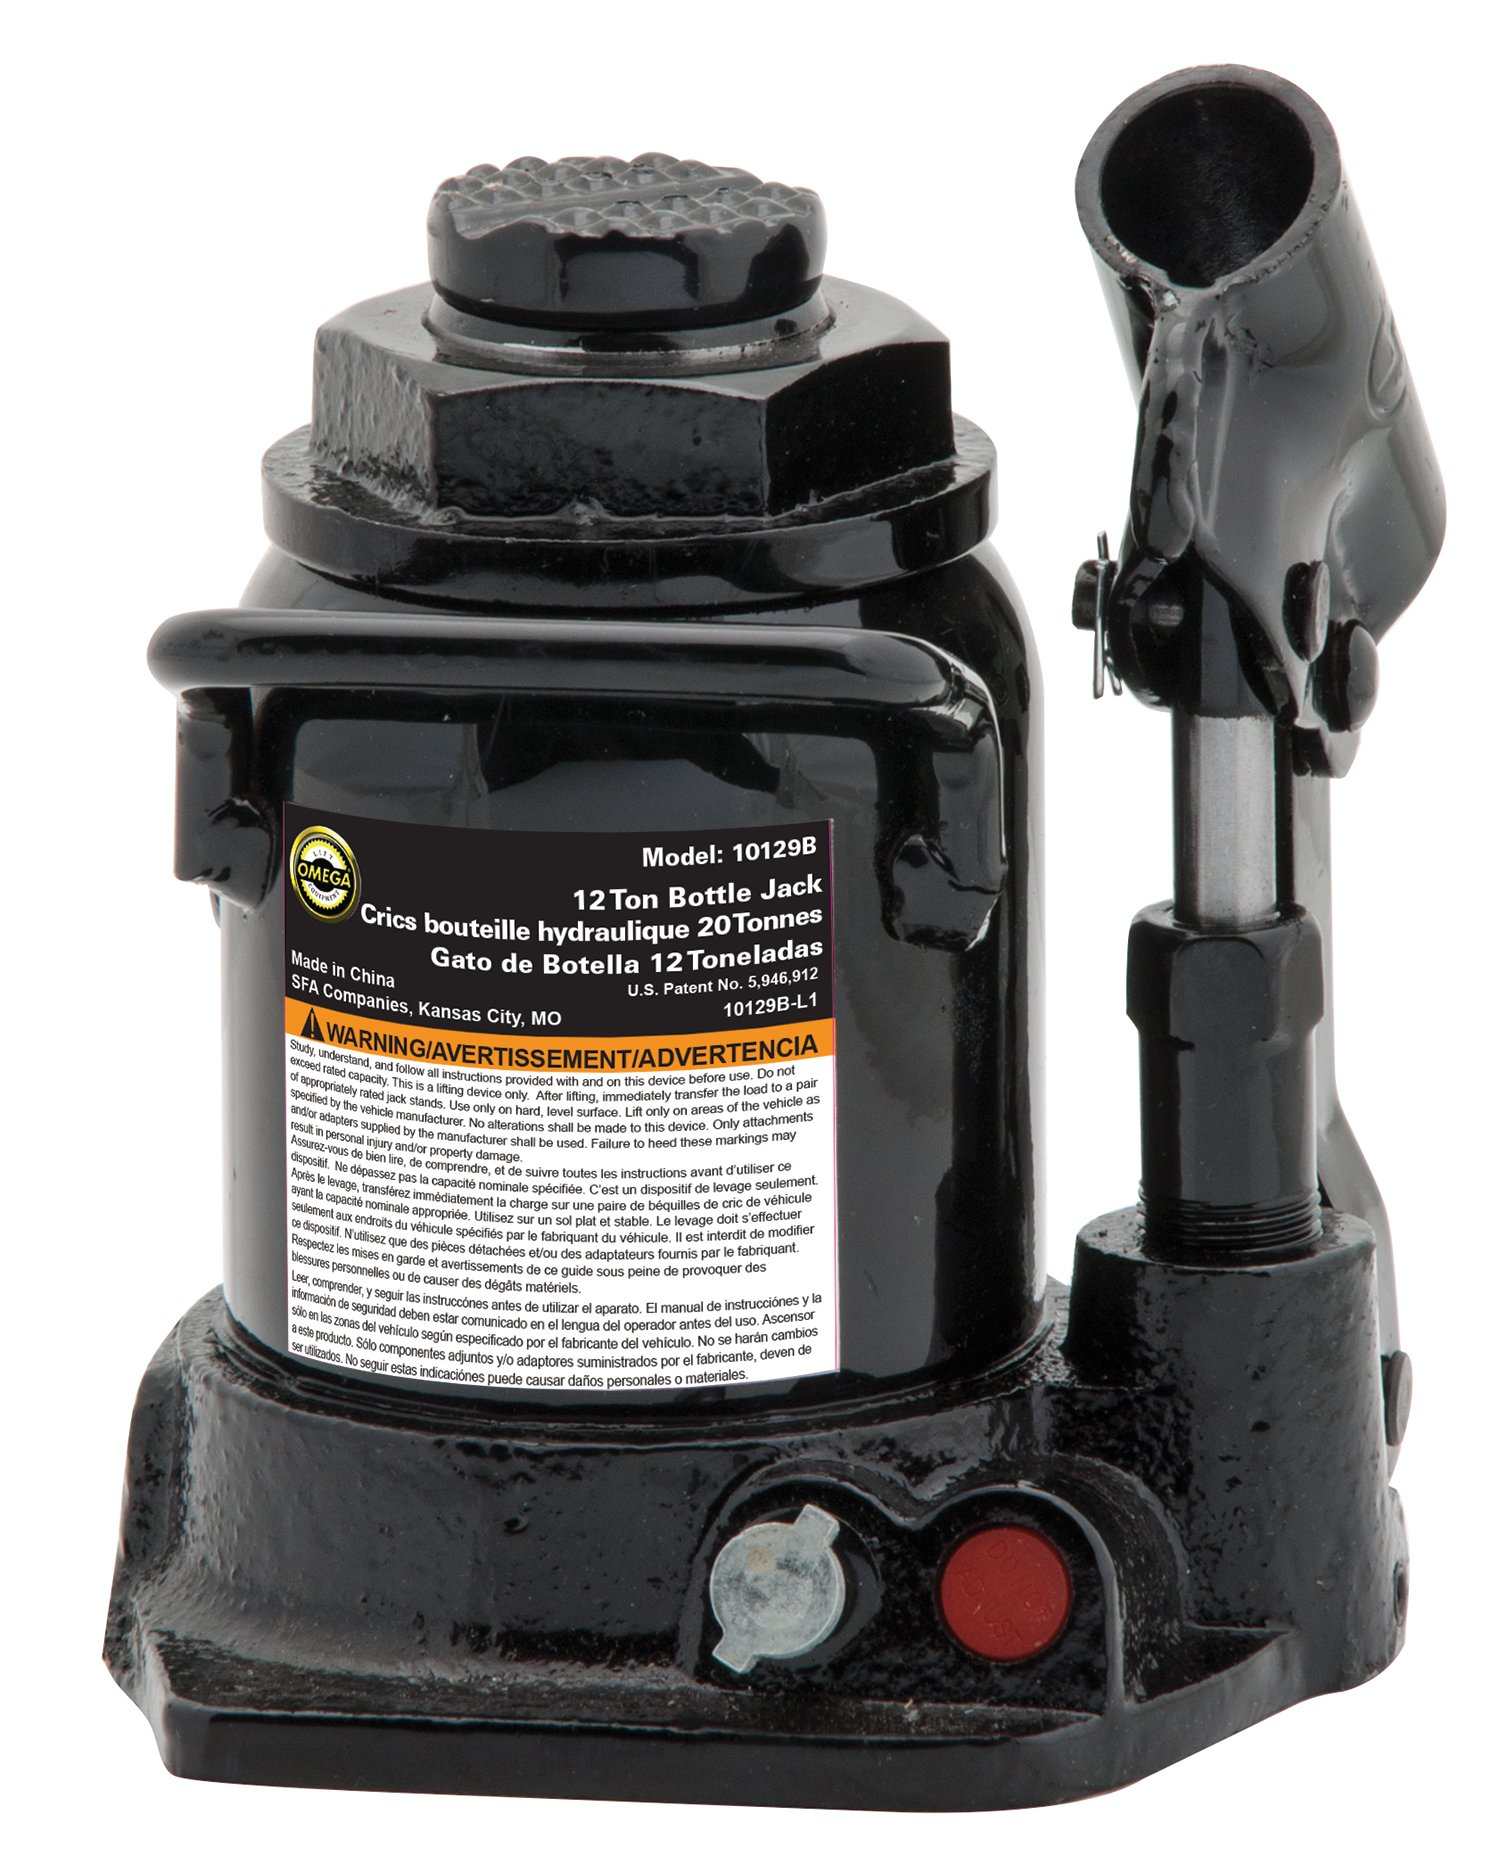 Omega 10129B Black Shorty Hydraulic Bottle Jack - 12 Ton Capacity